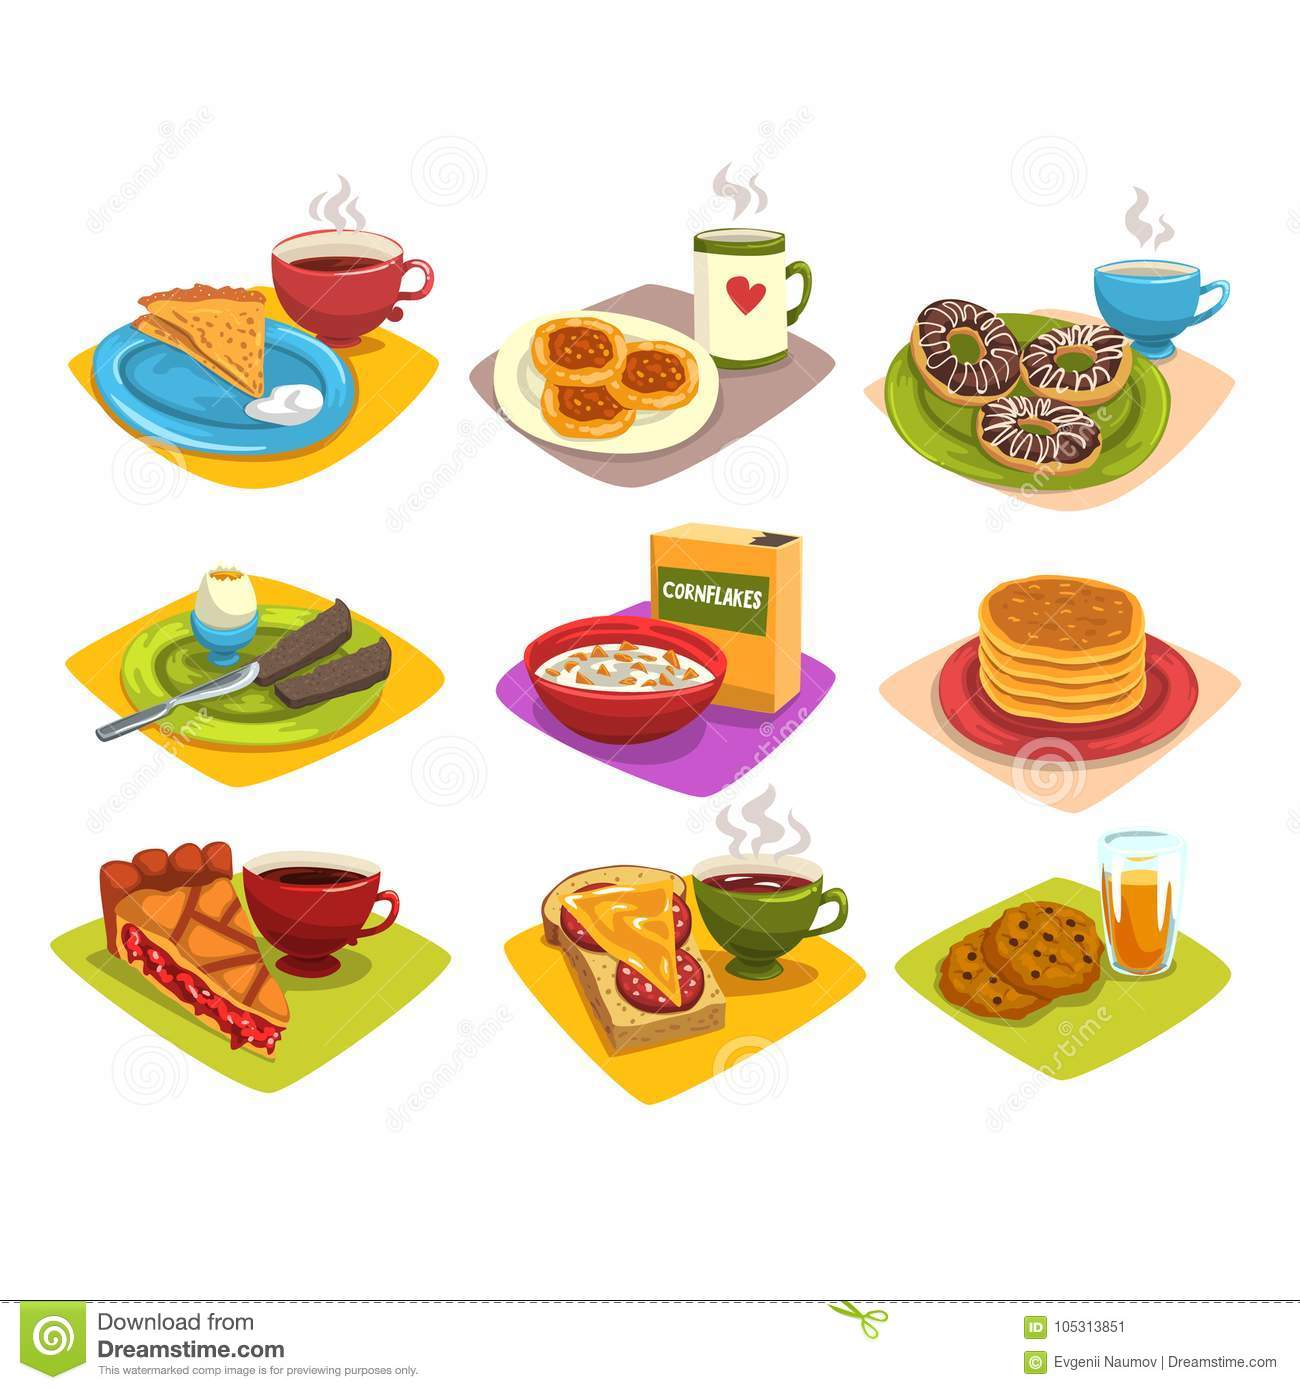 classic breakfast ideas set. cartoon illustration with pancakes and